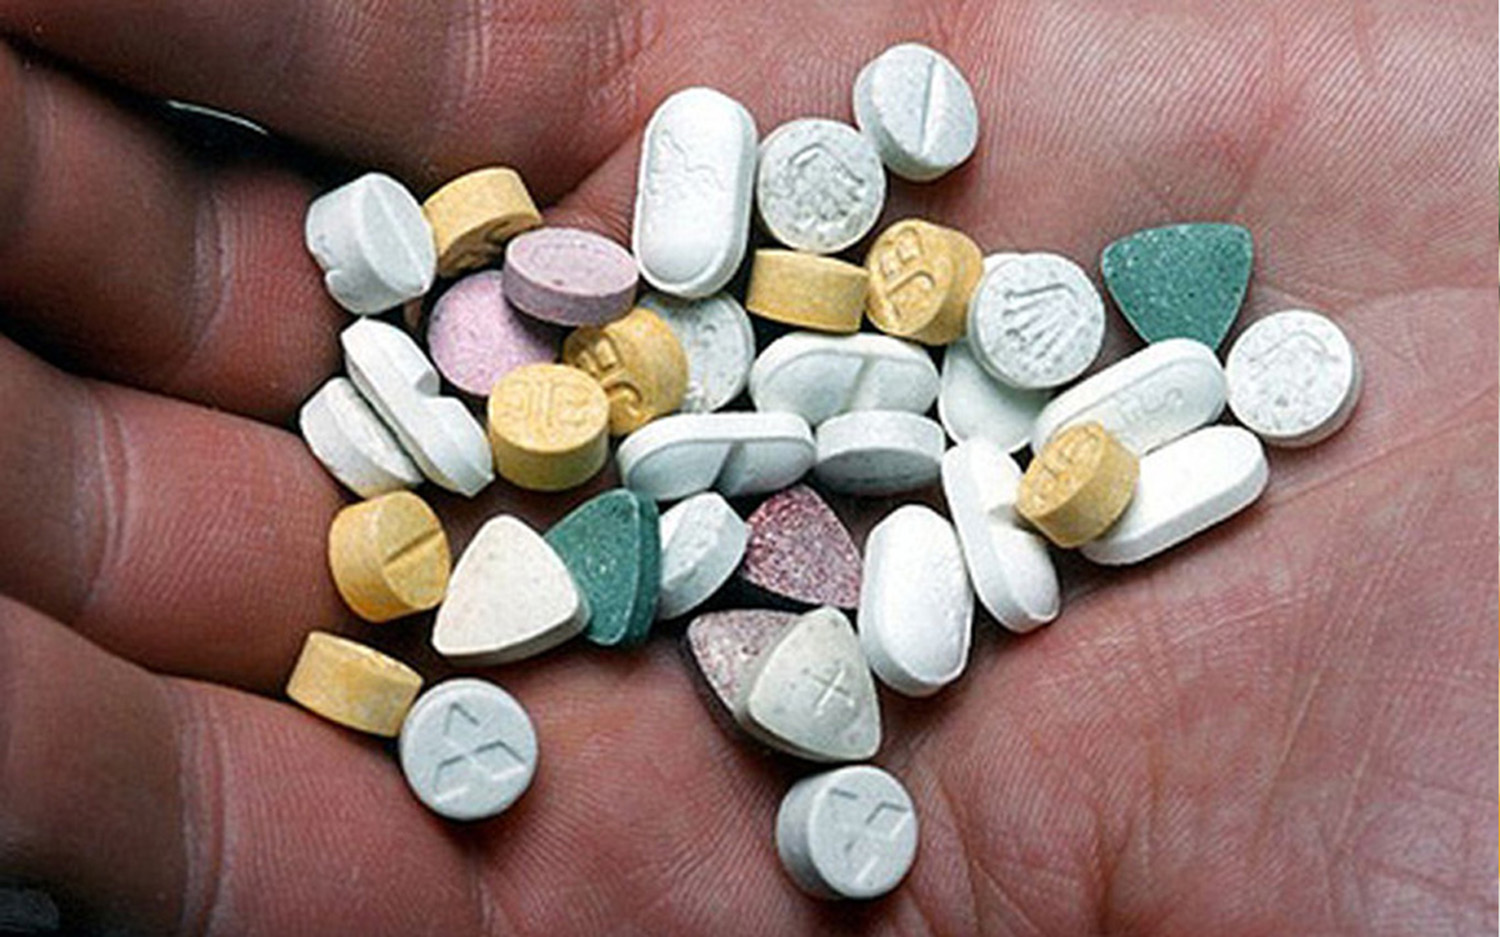 An Irish tourist has escaped conviction after being arrested with ten MDMA capsules.